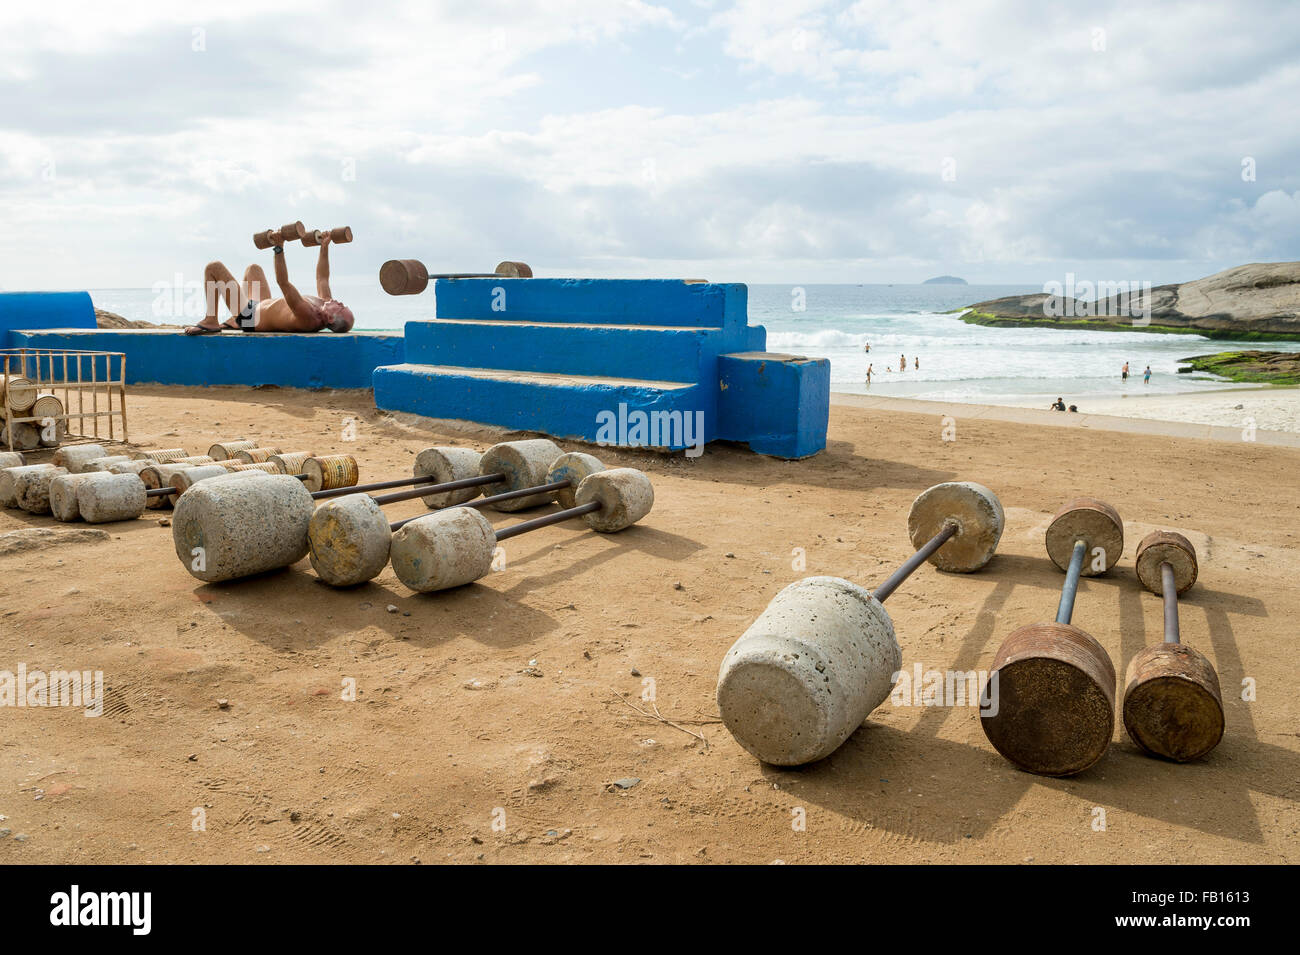 RIO DE JANEIRO, BRAZIL - FEBRUARY 12, 2015: Brazilian man exercises at the outdoor workout station at Arpoador, - Stock Image